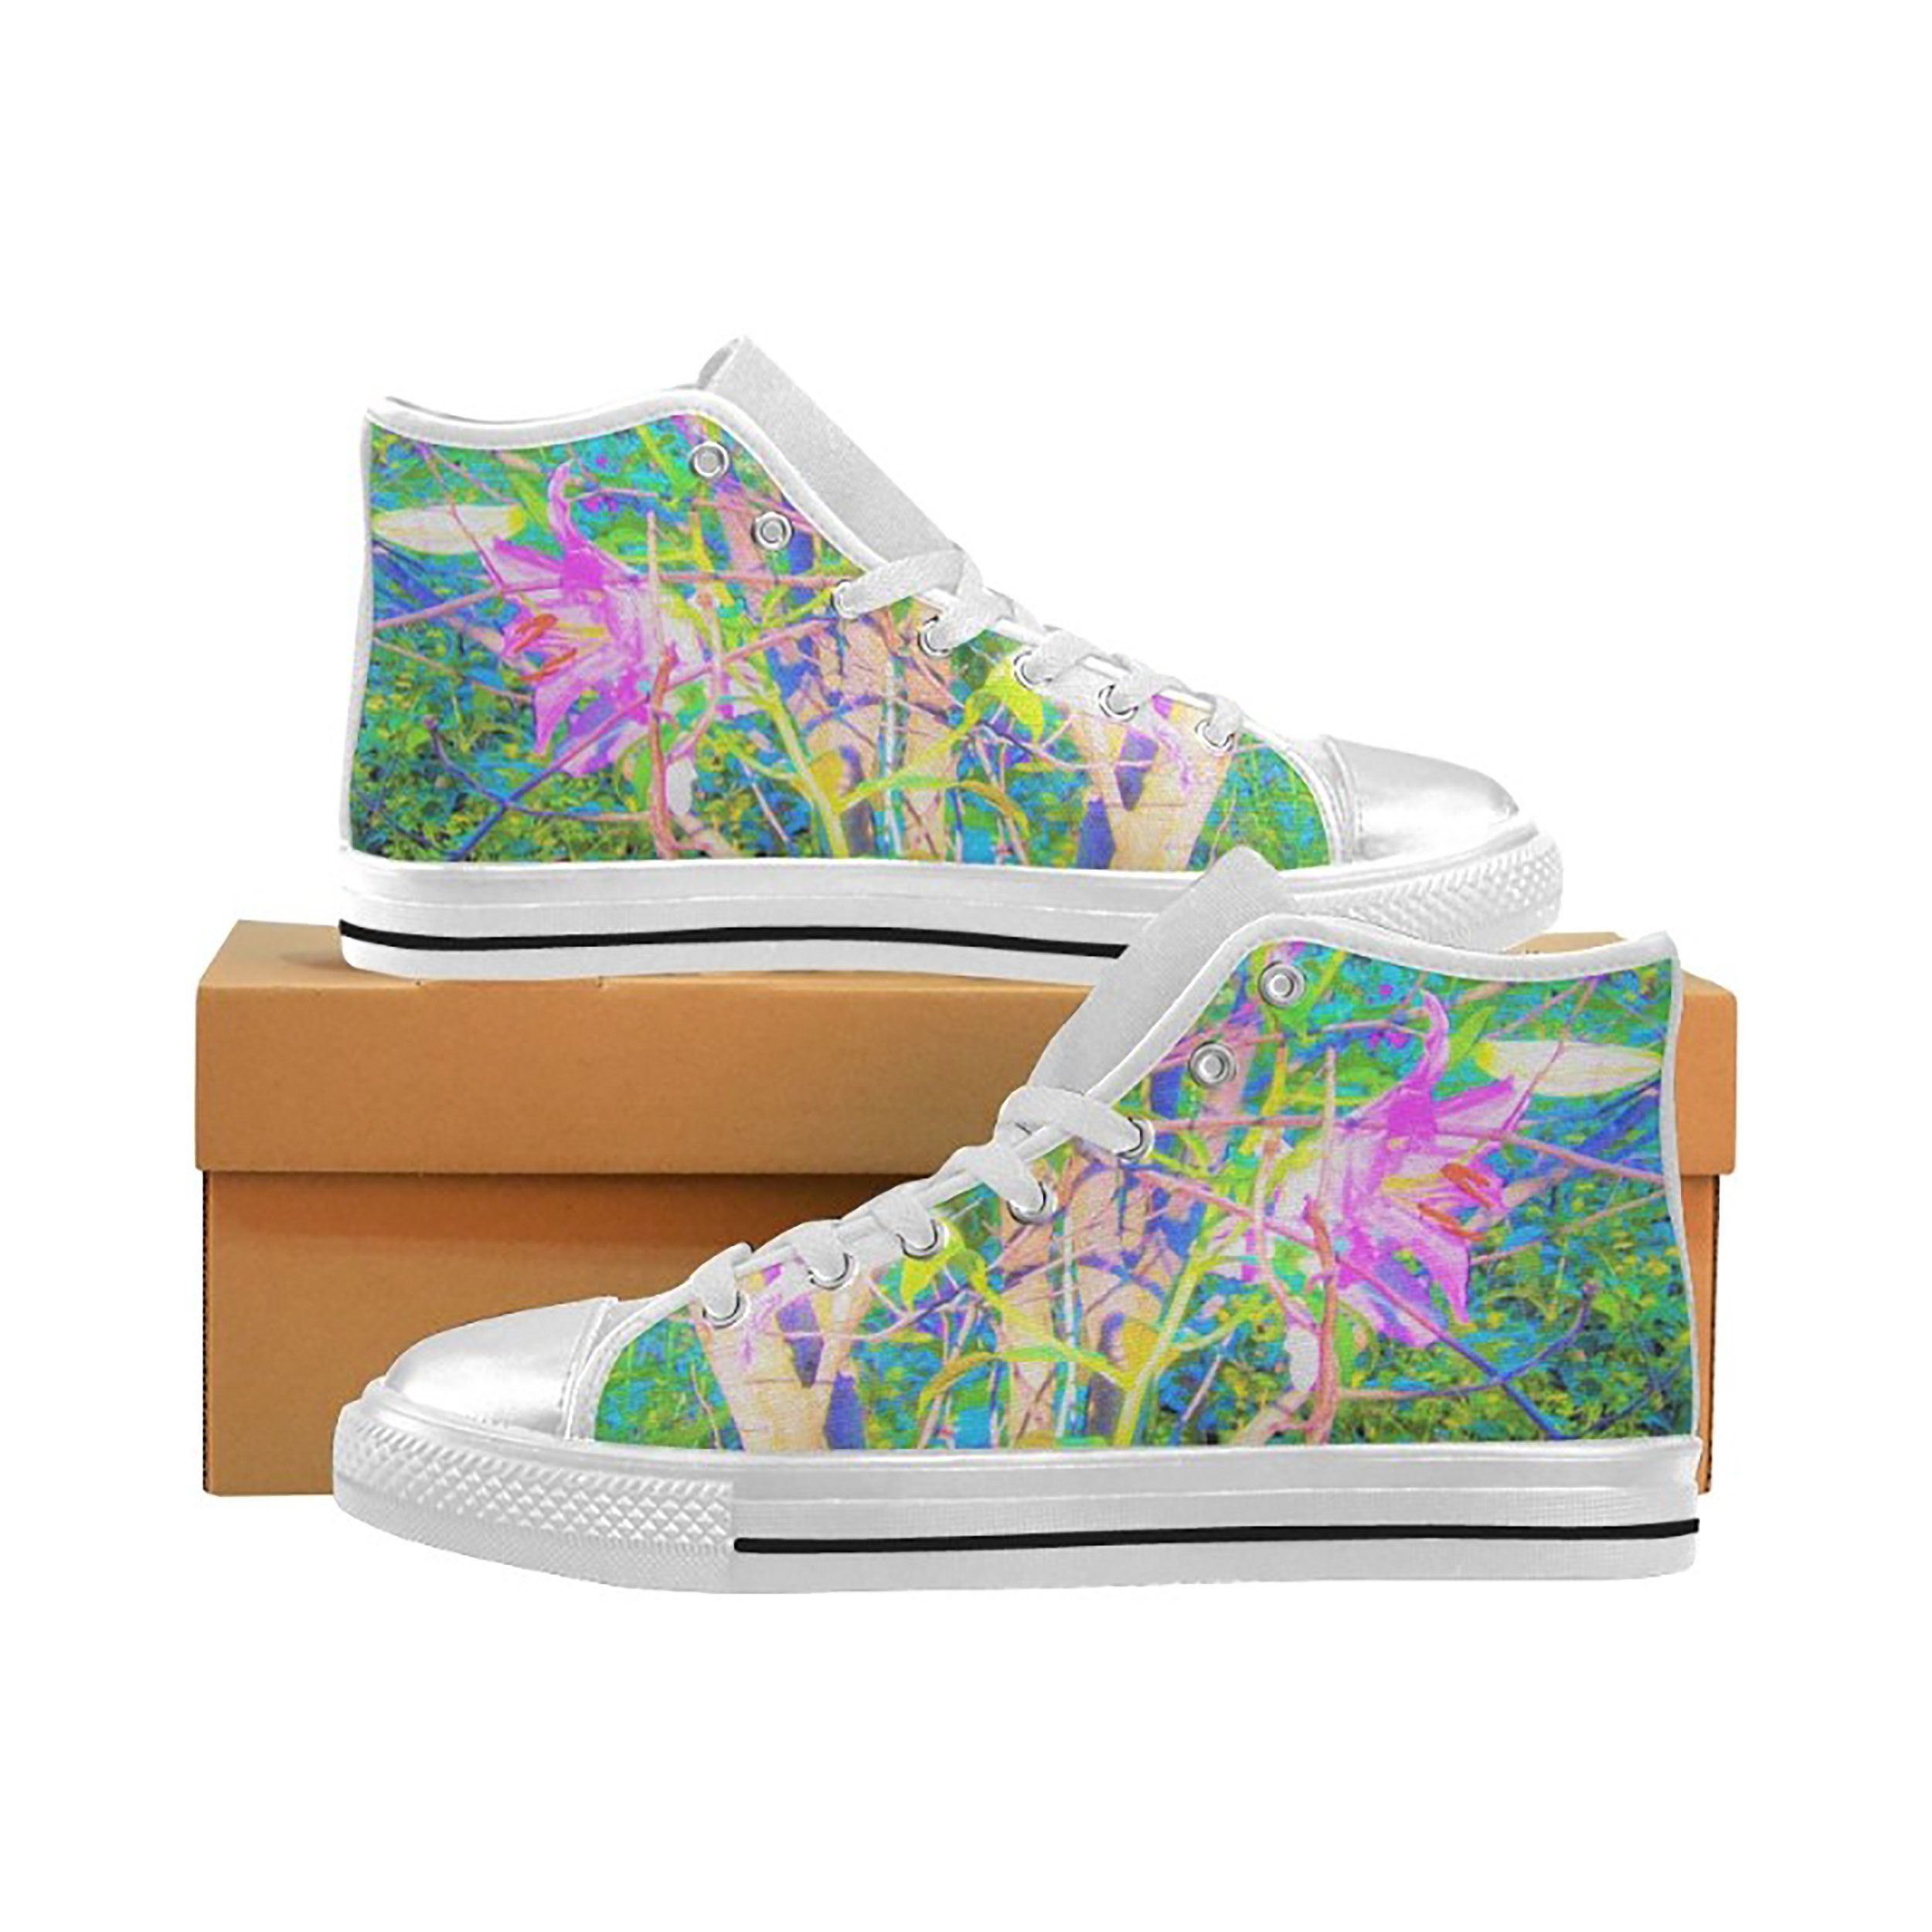 Abstract Colorful Low Top Canvas Sneakers Skateboard Shoes Slip on Lace-up Fashion Sneaker Shoe Women